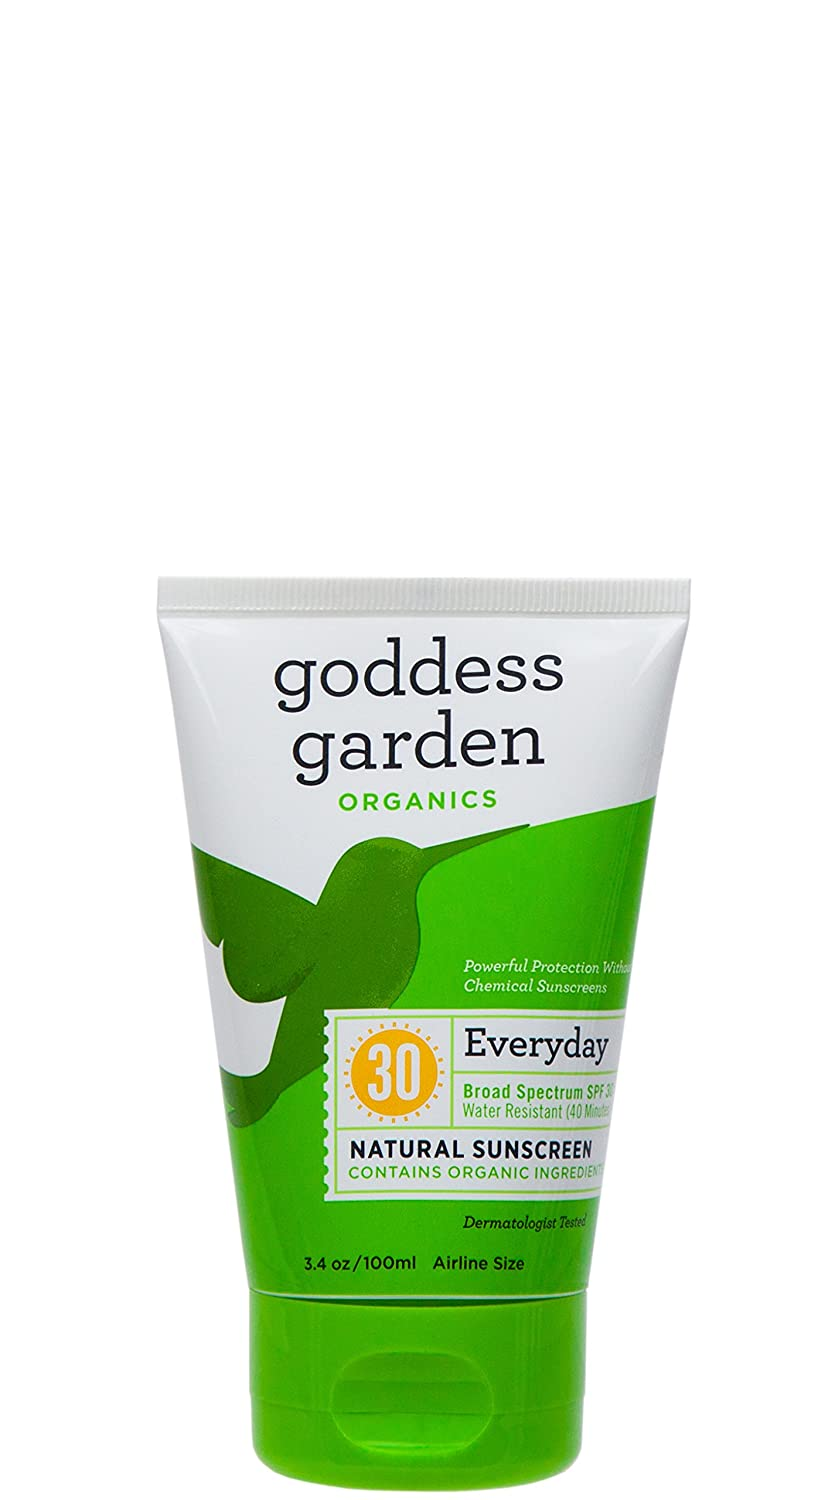 Goddess Garden Organics SPF 30 Everyday Natural Mineral Sunscreen Lotion for Sensitive Skin (3.4 Ounce Tube) Reef Safe, Water Resistant, Vegan, Leaping Bunny Certified Cruelty-Free, Non-Nano